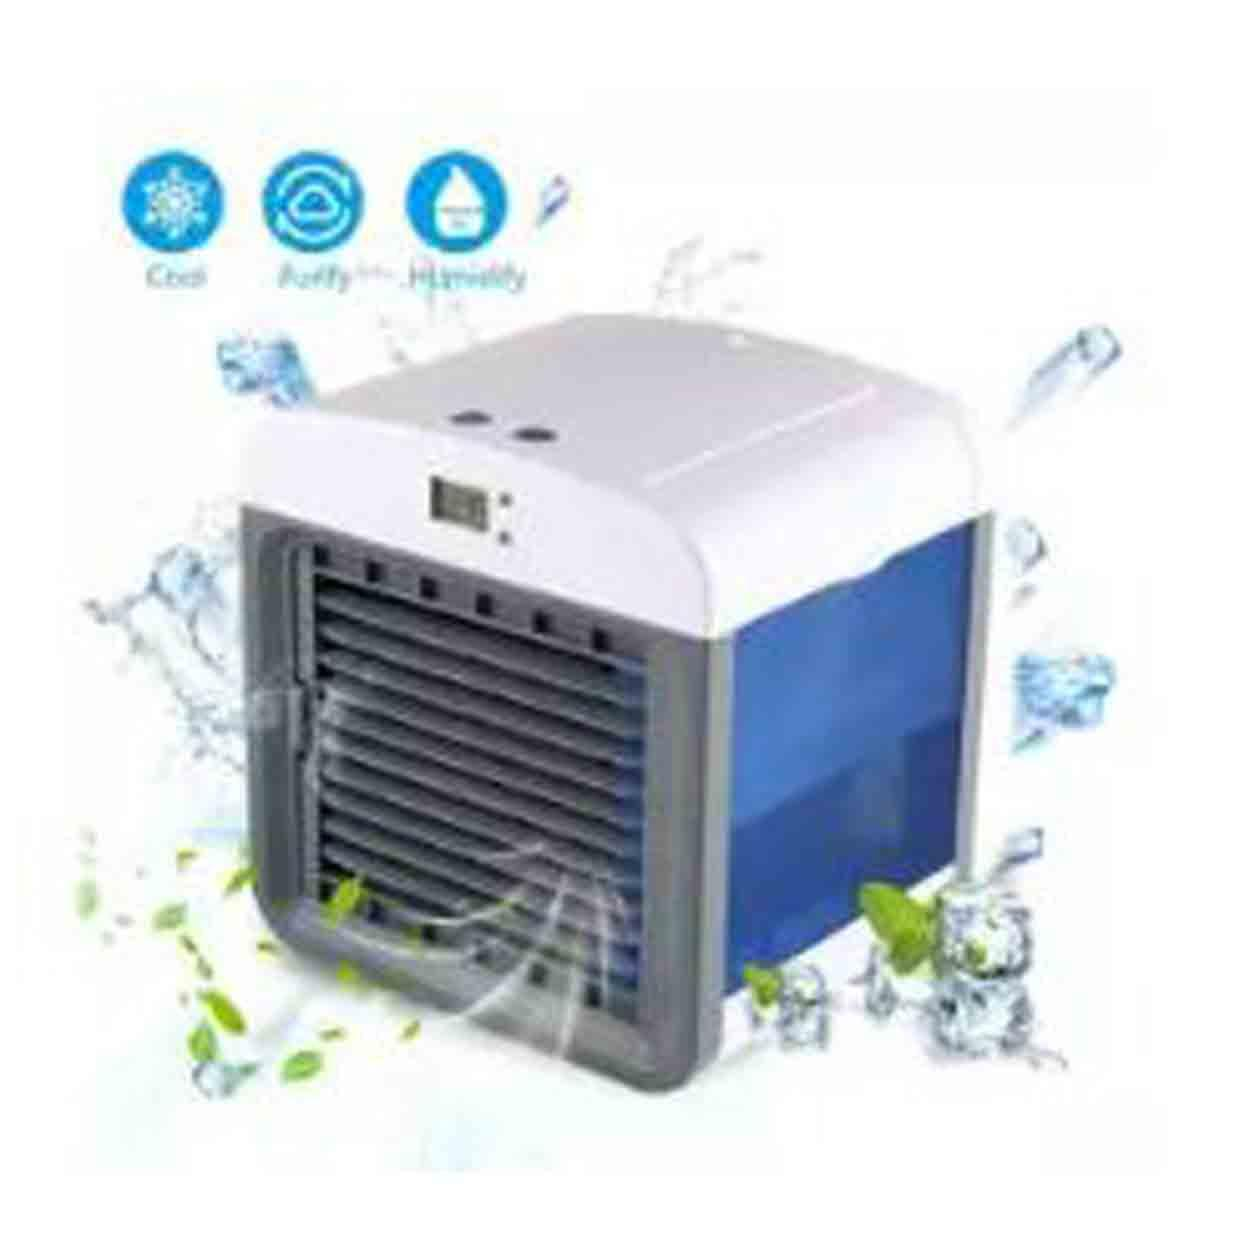 Fortunet Super Waterproof, Personal Space Air Cooler, 3-In-1 Usb Mini Portable Air Conditioner, Humidifier, Purifier, Desktop Cooling Fan Office Home Outdoor Travel By Xzycollection.